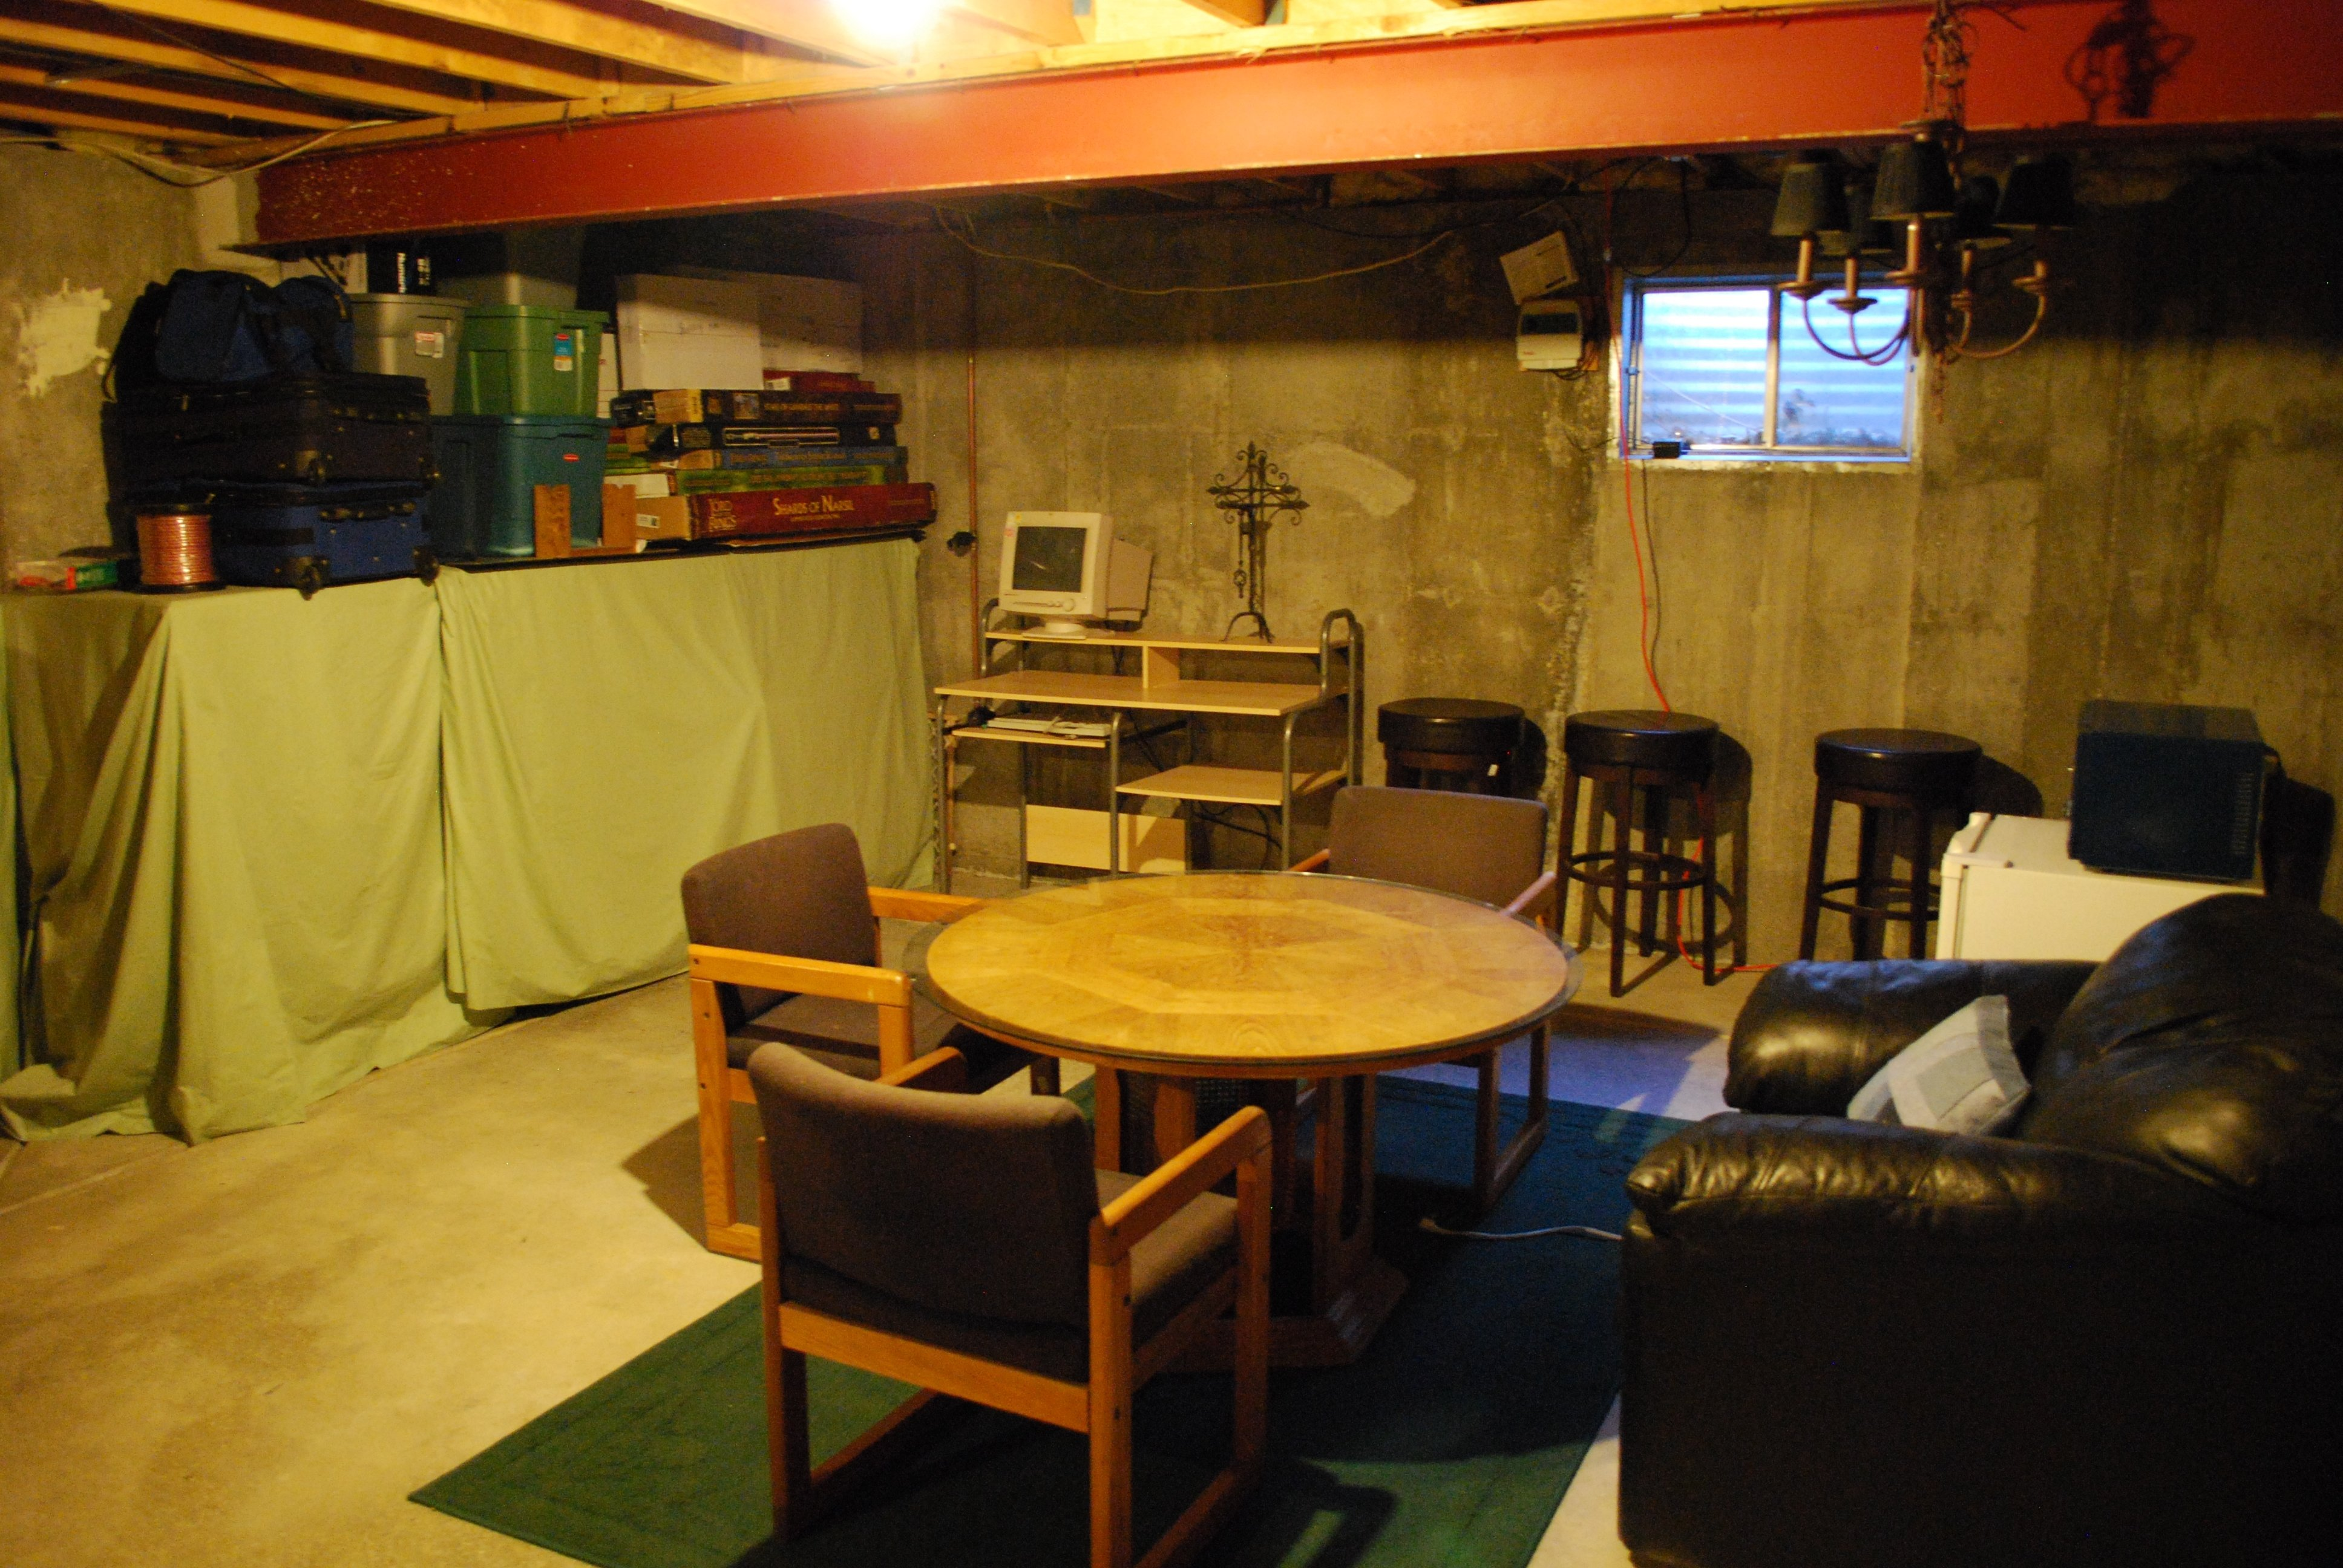 10 Pretty Man Cave Ideas On A Budget remarkable man cave ideas for basement new unfinished www 2020